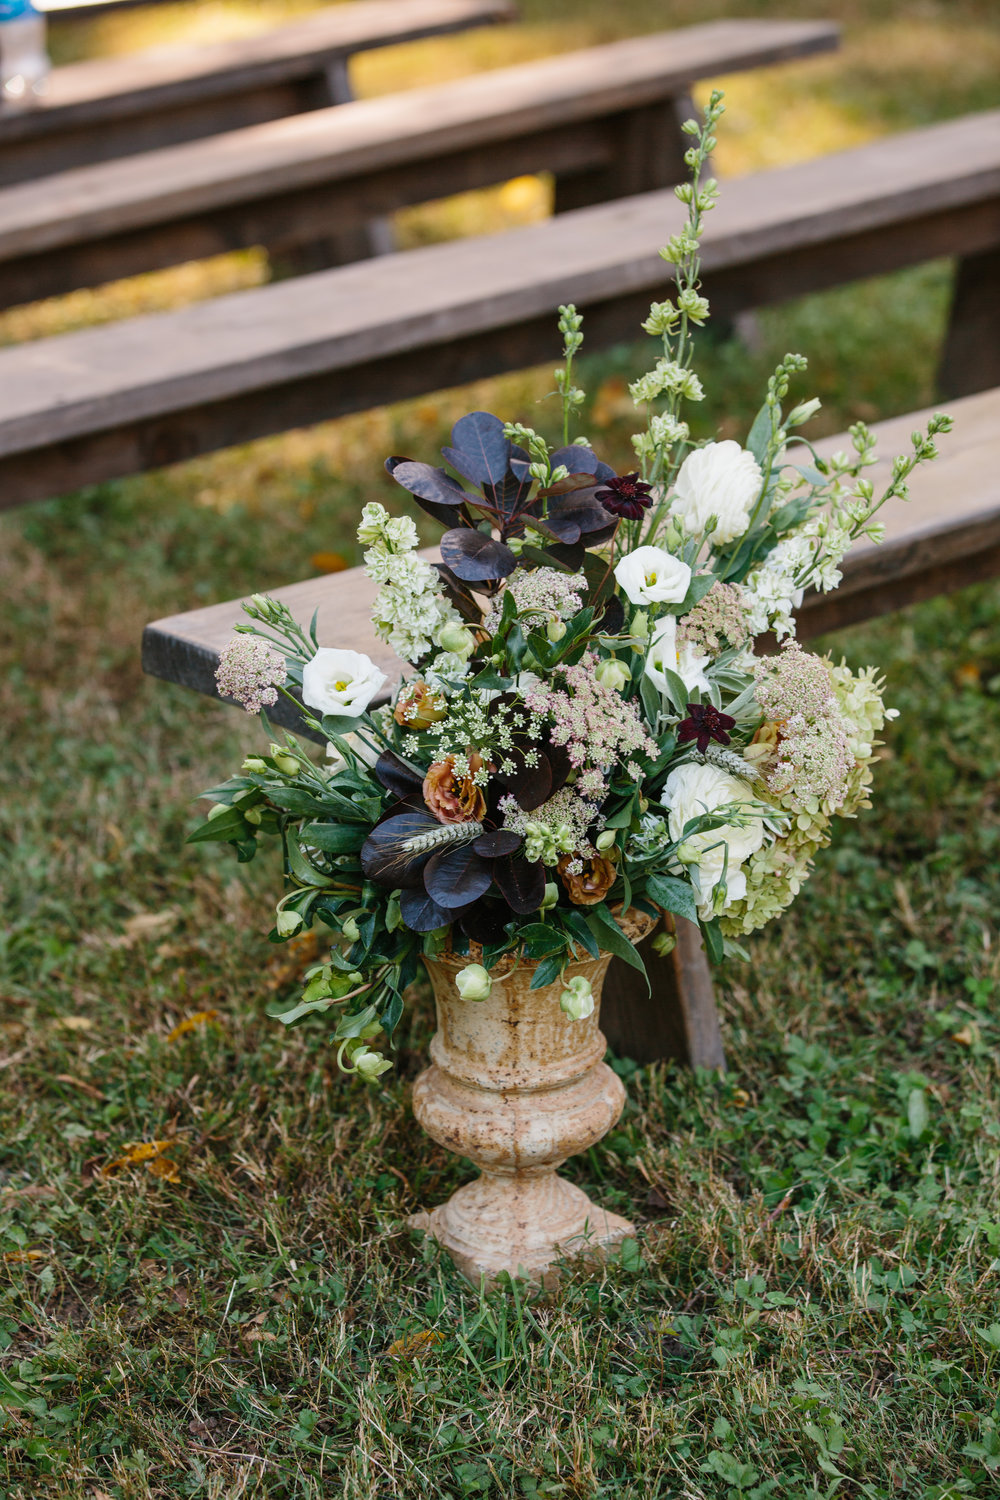 Fall Bloomsbury Farm Wedding - Nashville, TN